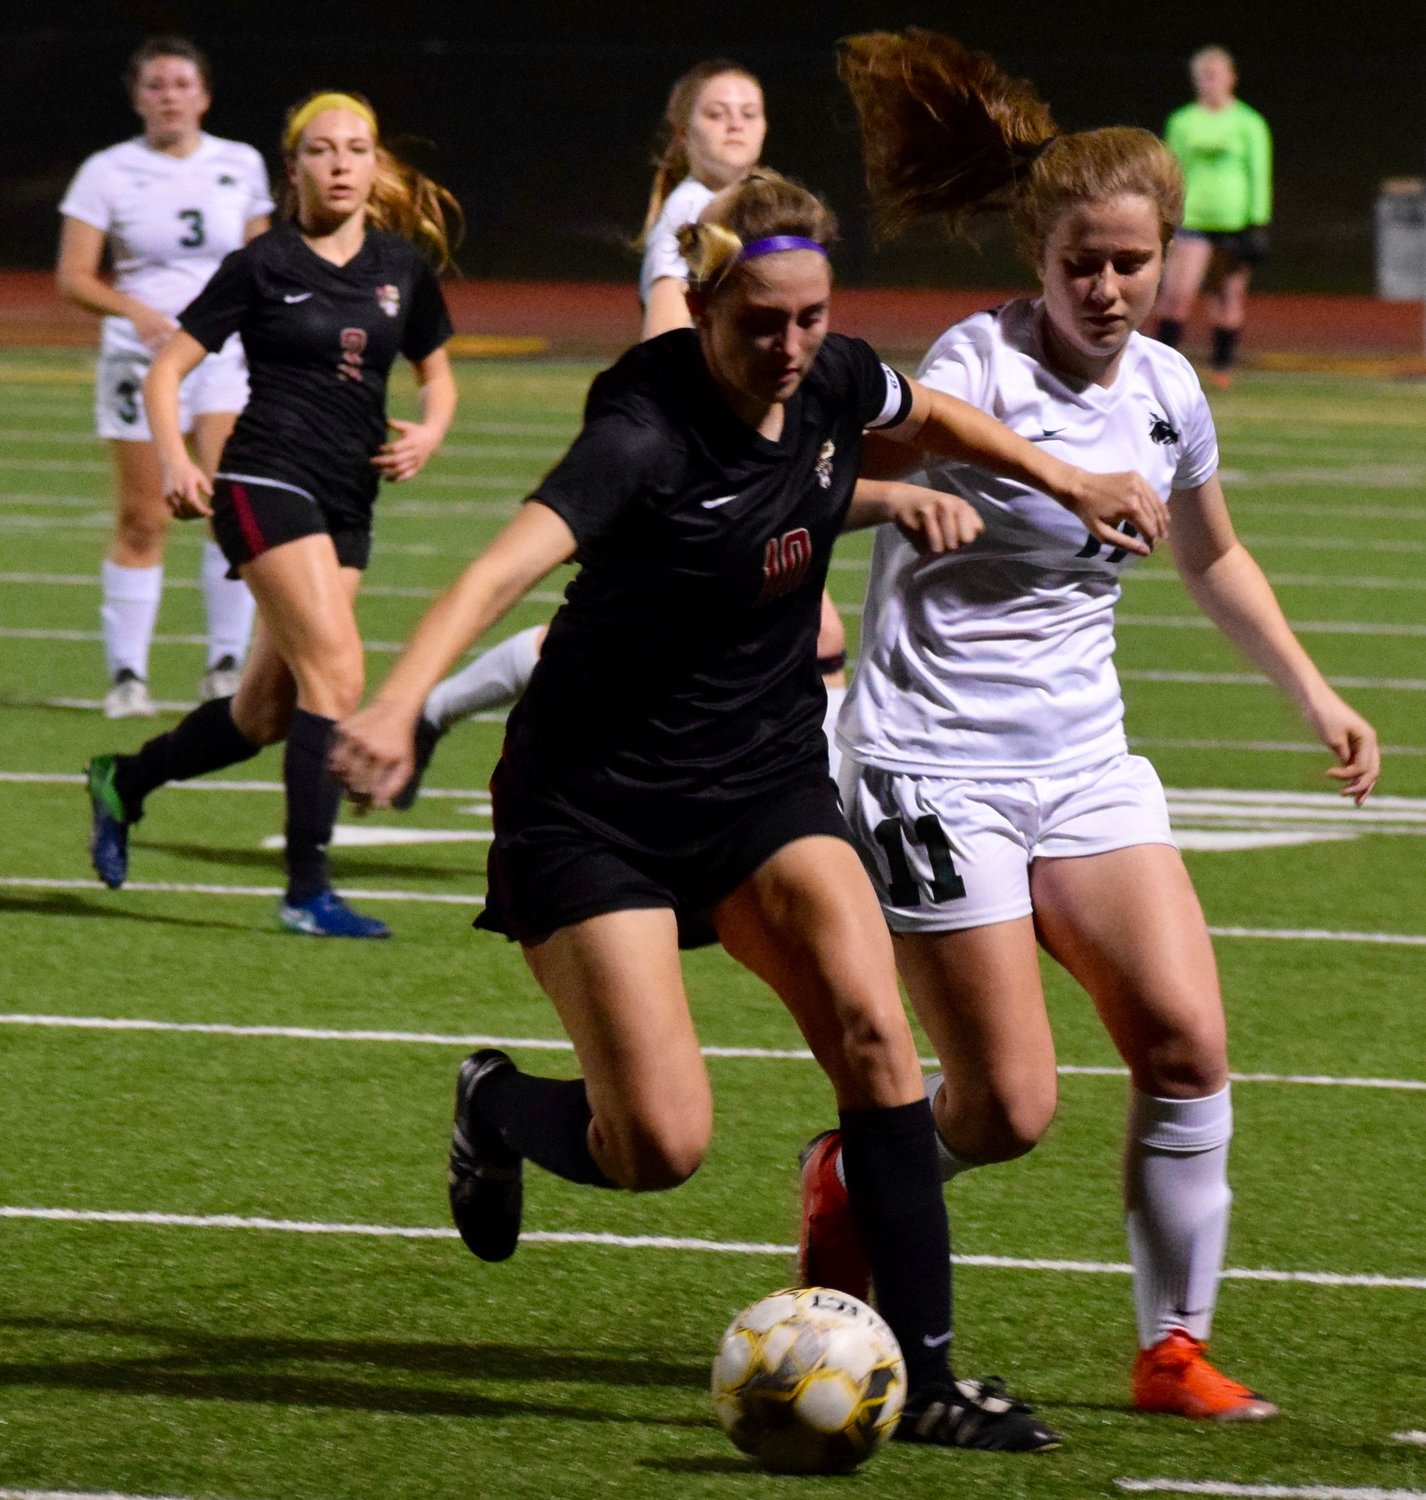 Megan Olds, left, and Rouse lost to Cedar Park 4-1 on Friday night.